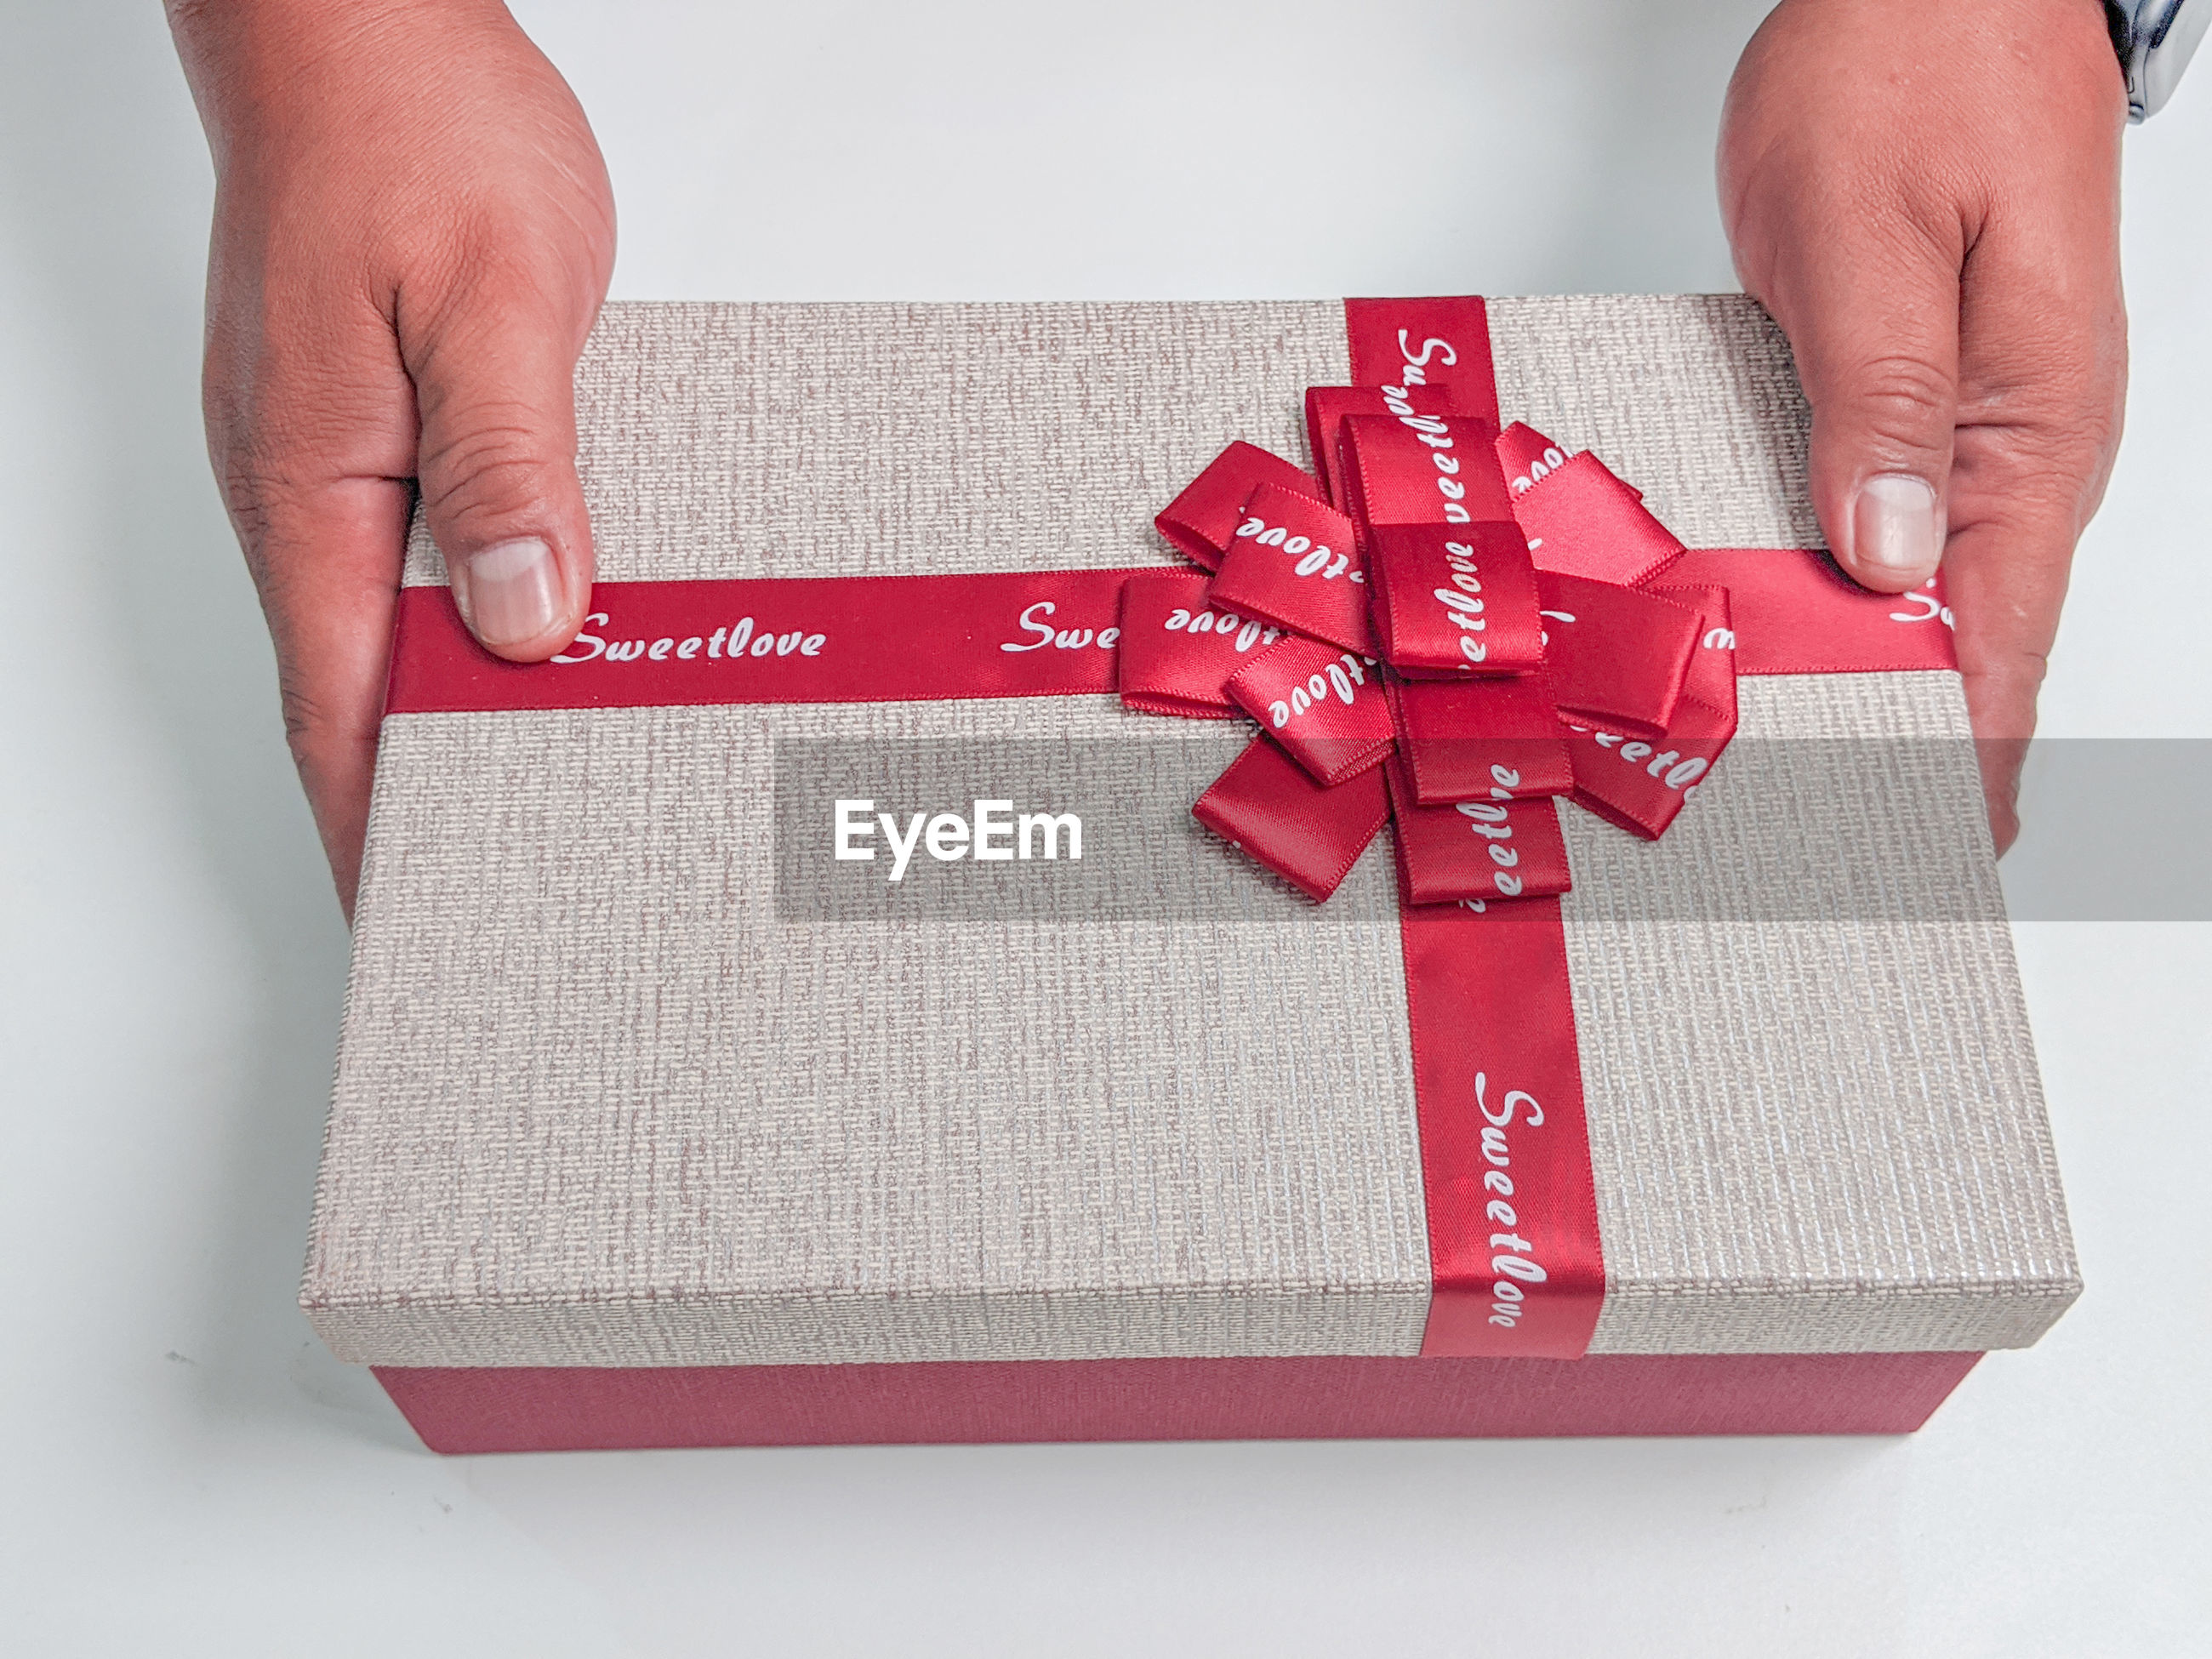 Cropped hands holding gift box on table